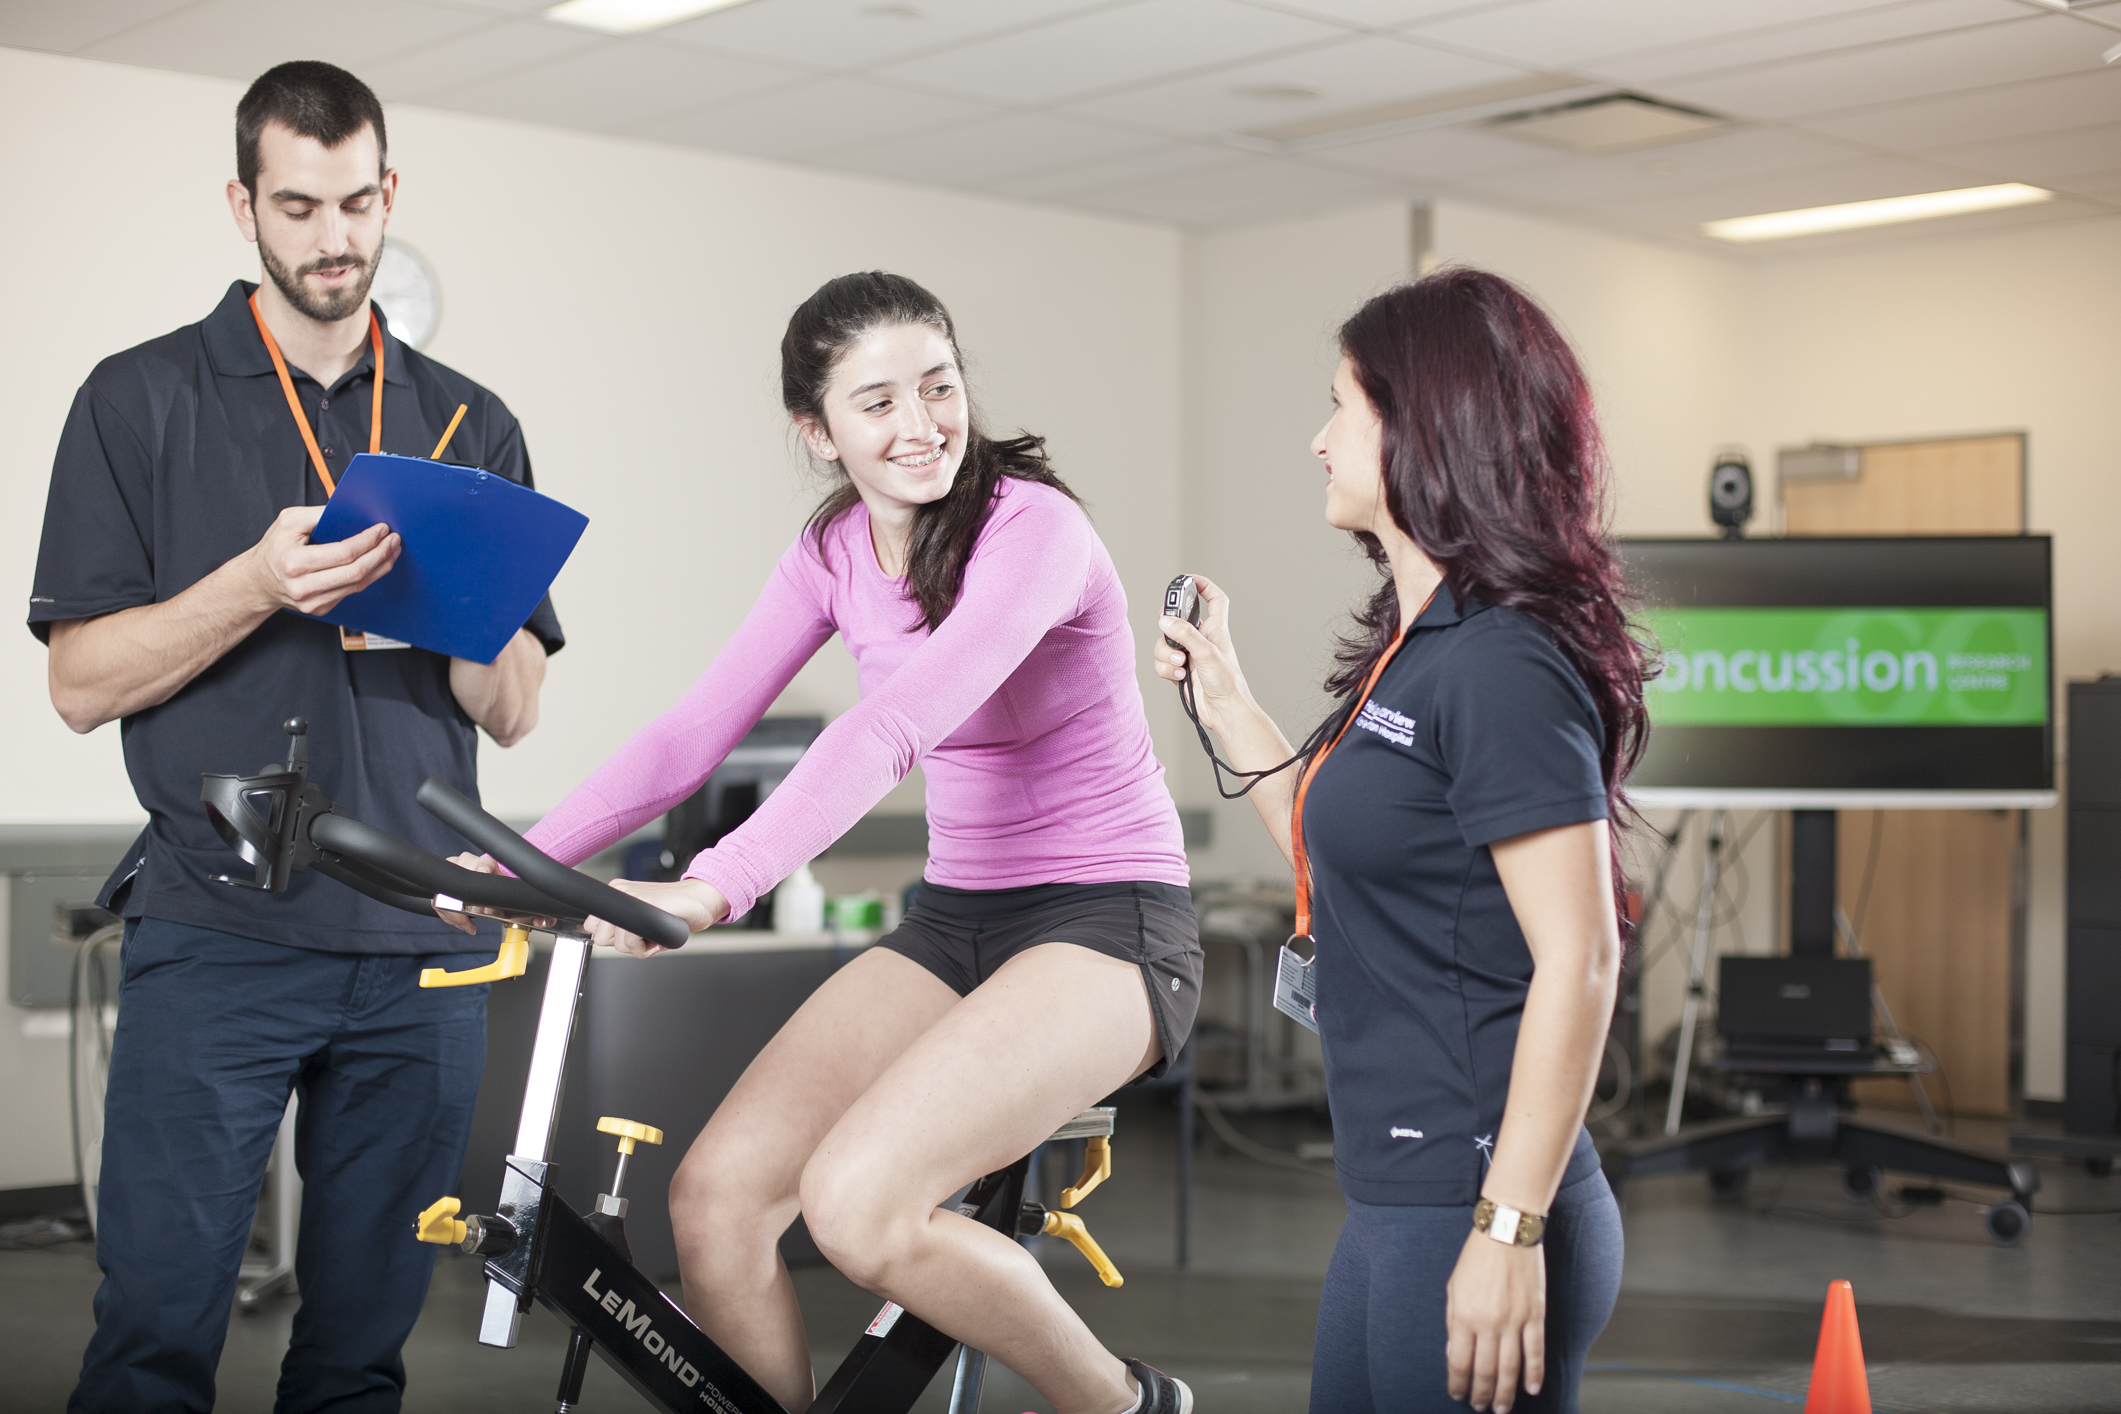 Girl riding exercise bike while a man and woman observe